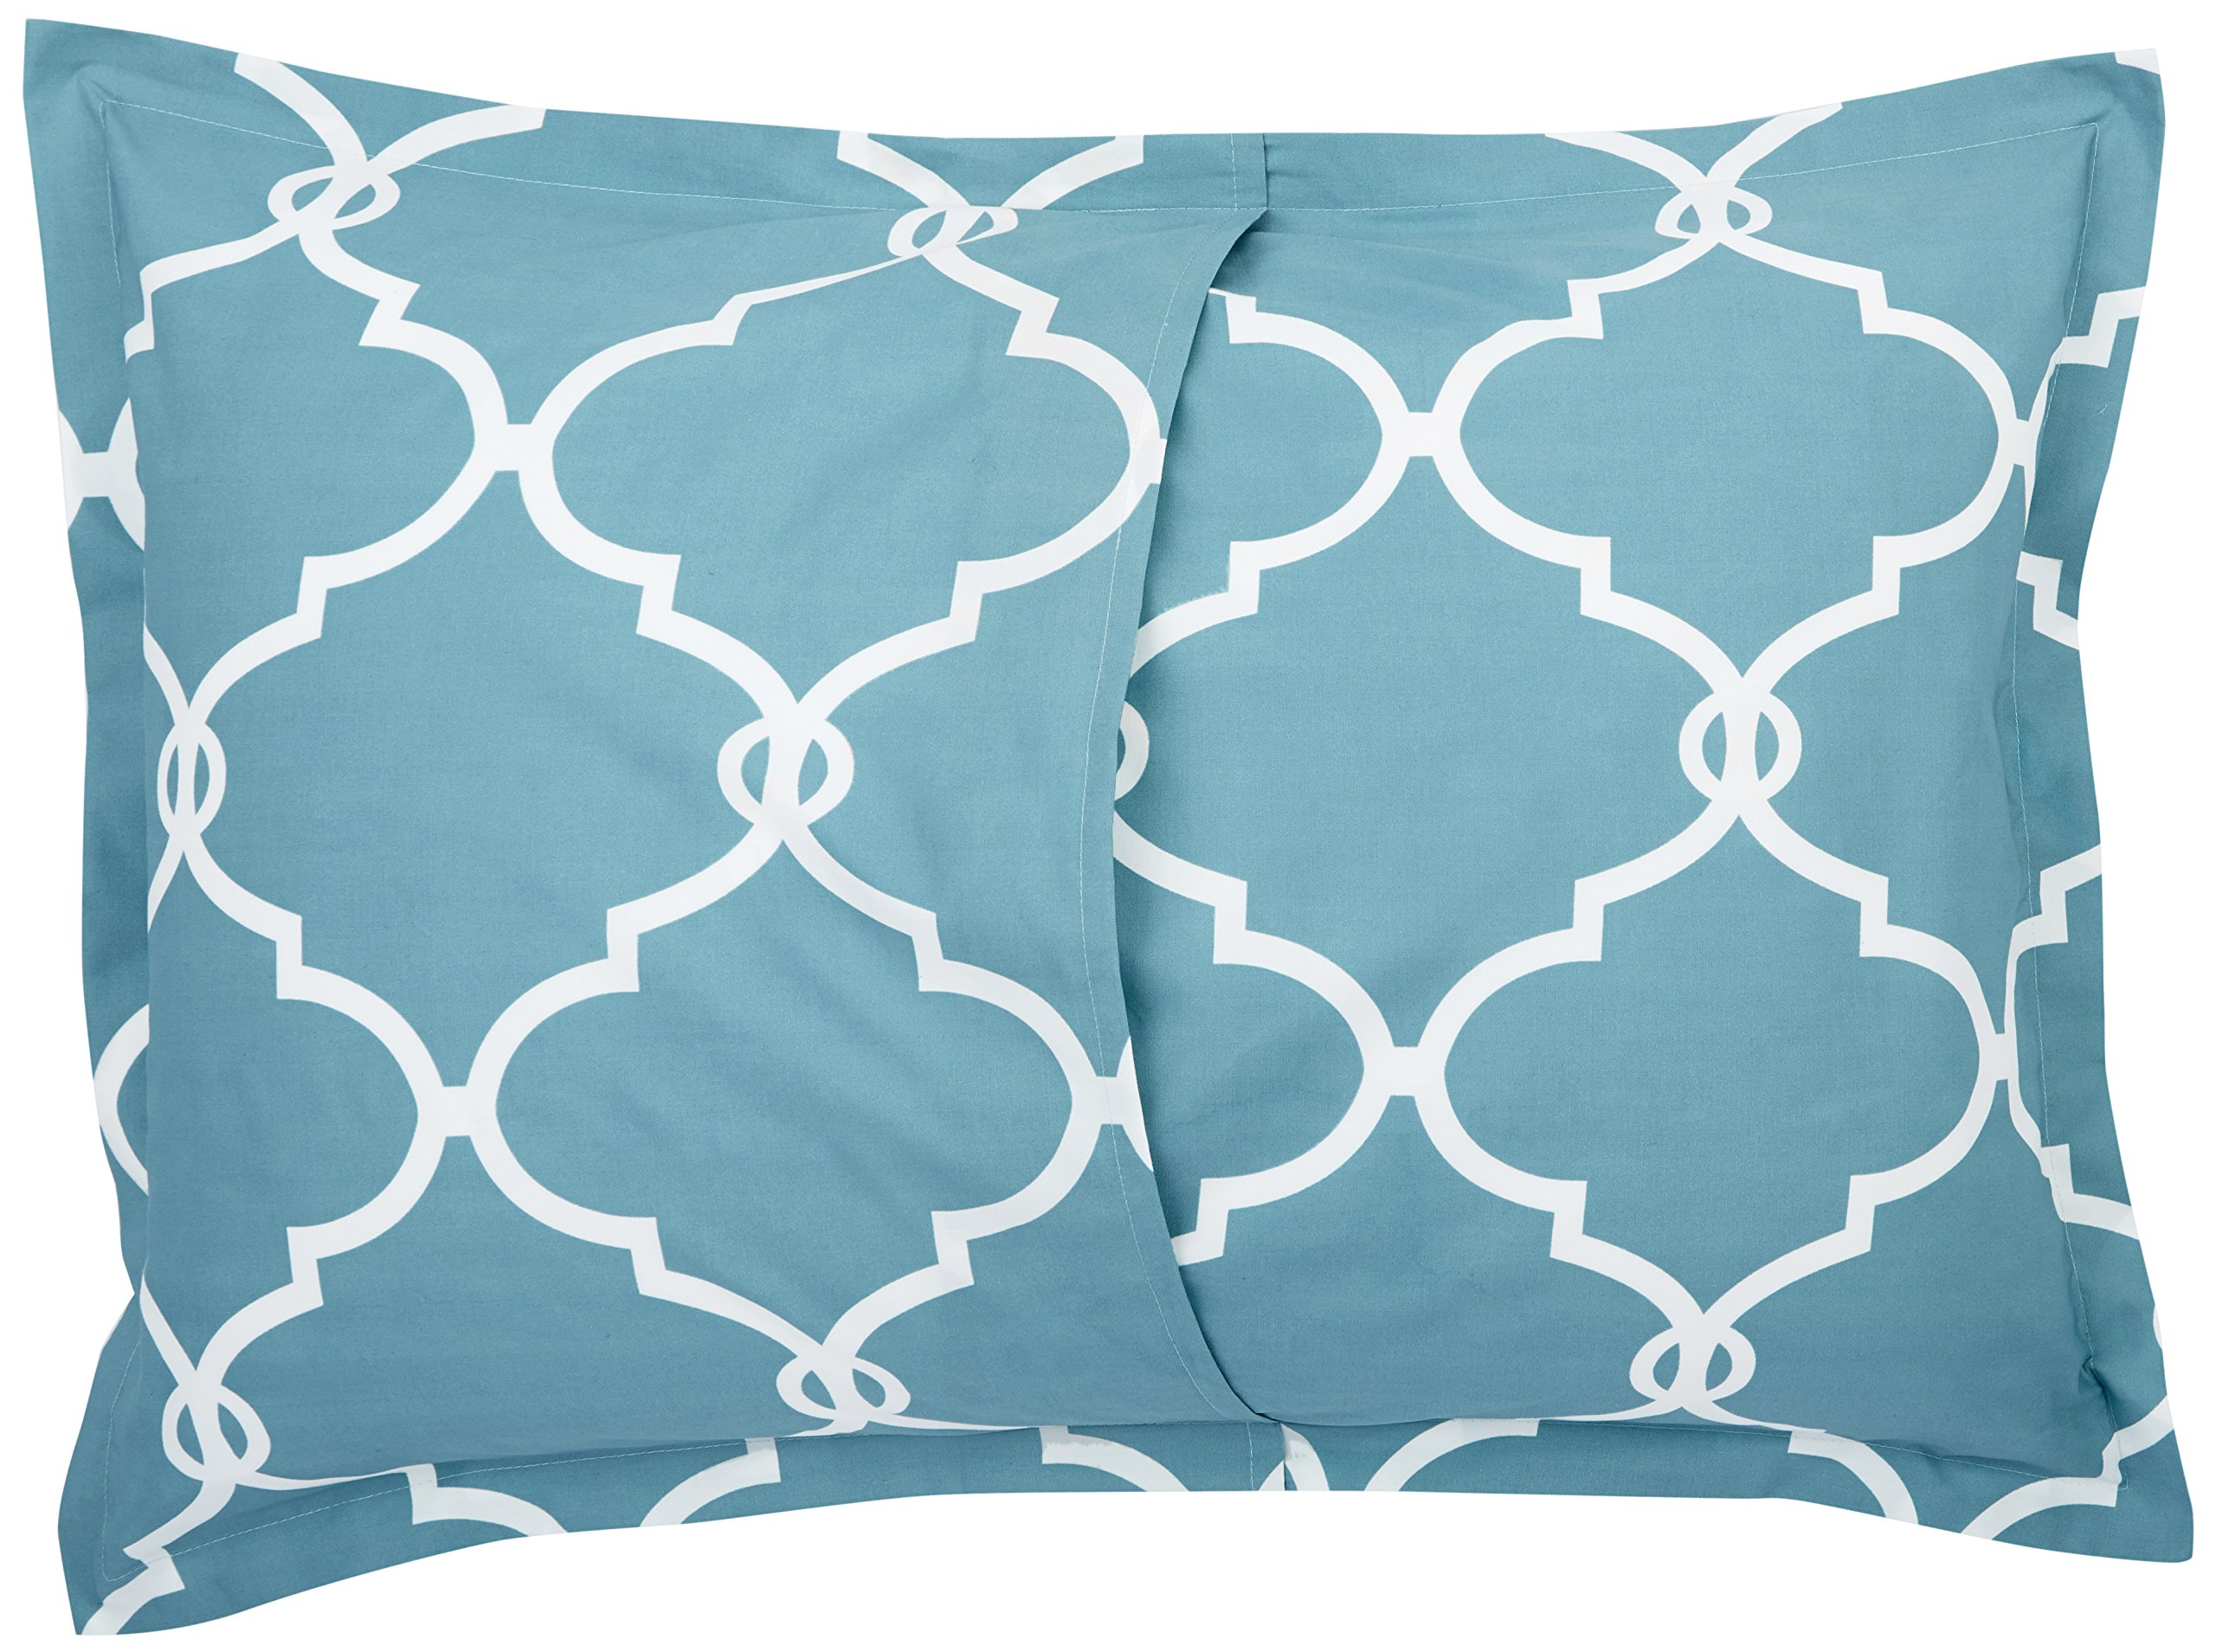 Pinzon 300-Thread-Count 100% Cotton Cool Percale Duvet Cover Set, Full/Queen, Spa Blue by Pinzon by Amazon (Image #6)